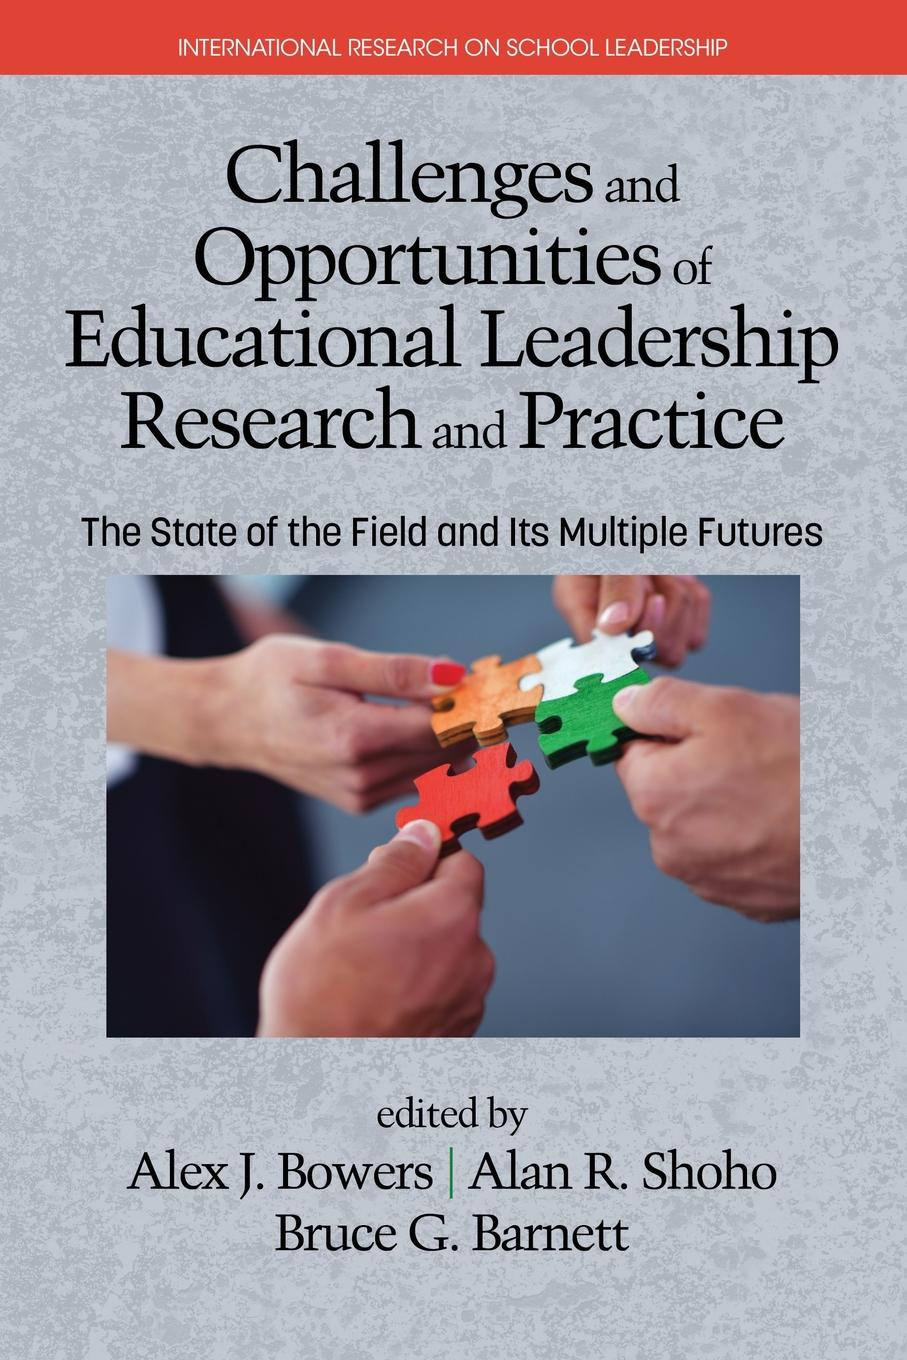 Challenges and Opportunities of Educational Leadership Research and Practice. The State of the Field and Its Multiple Futures